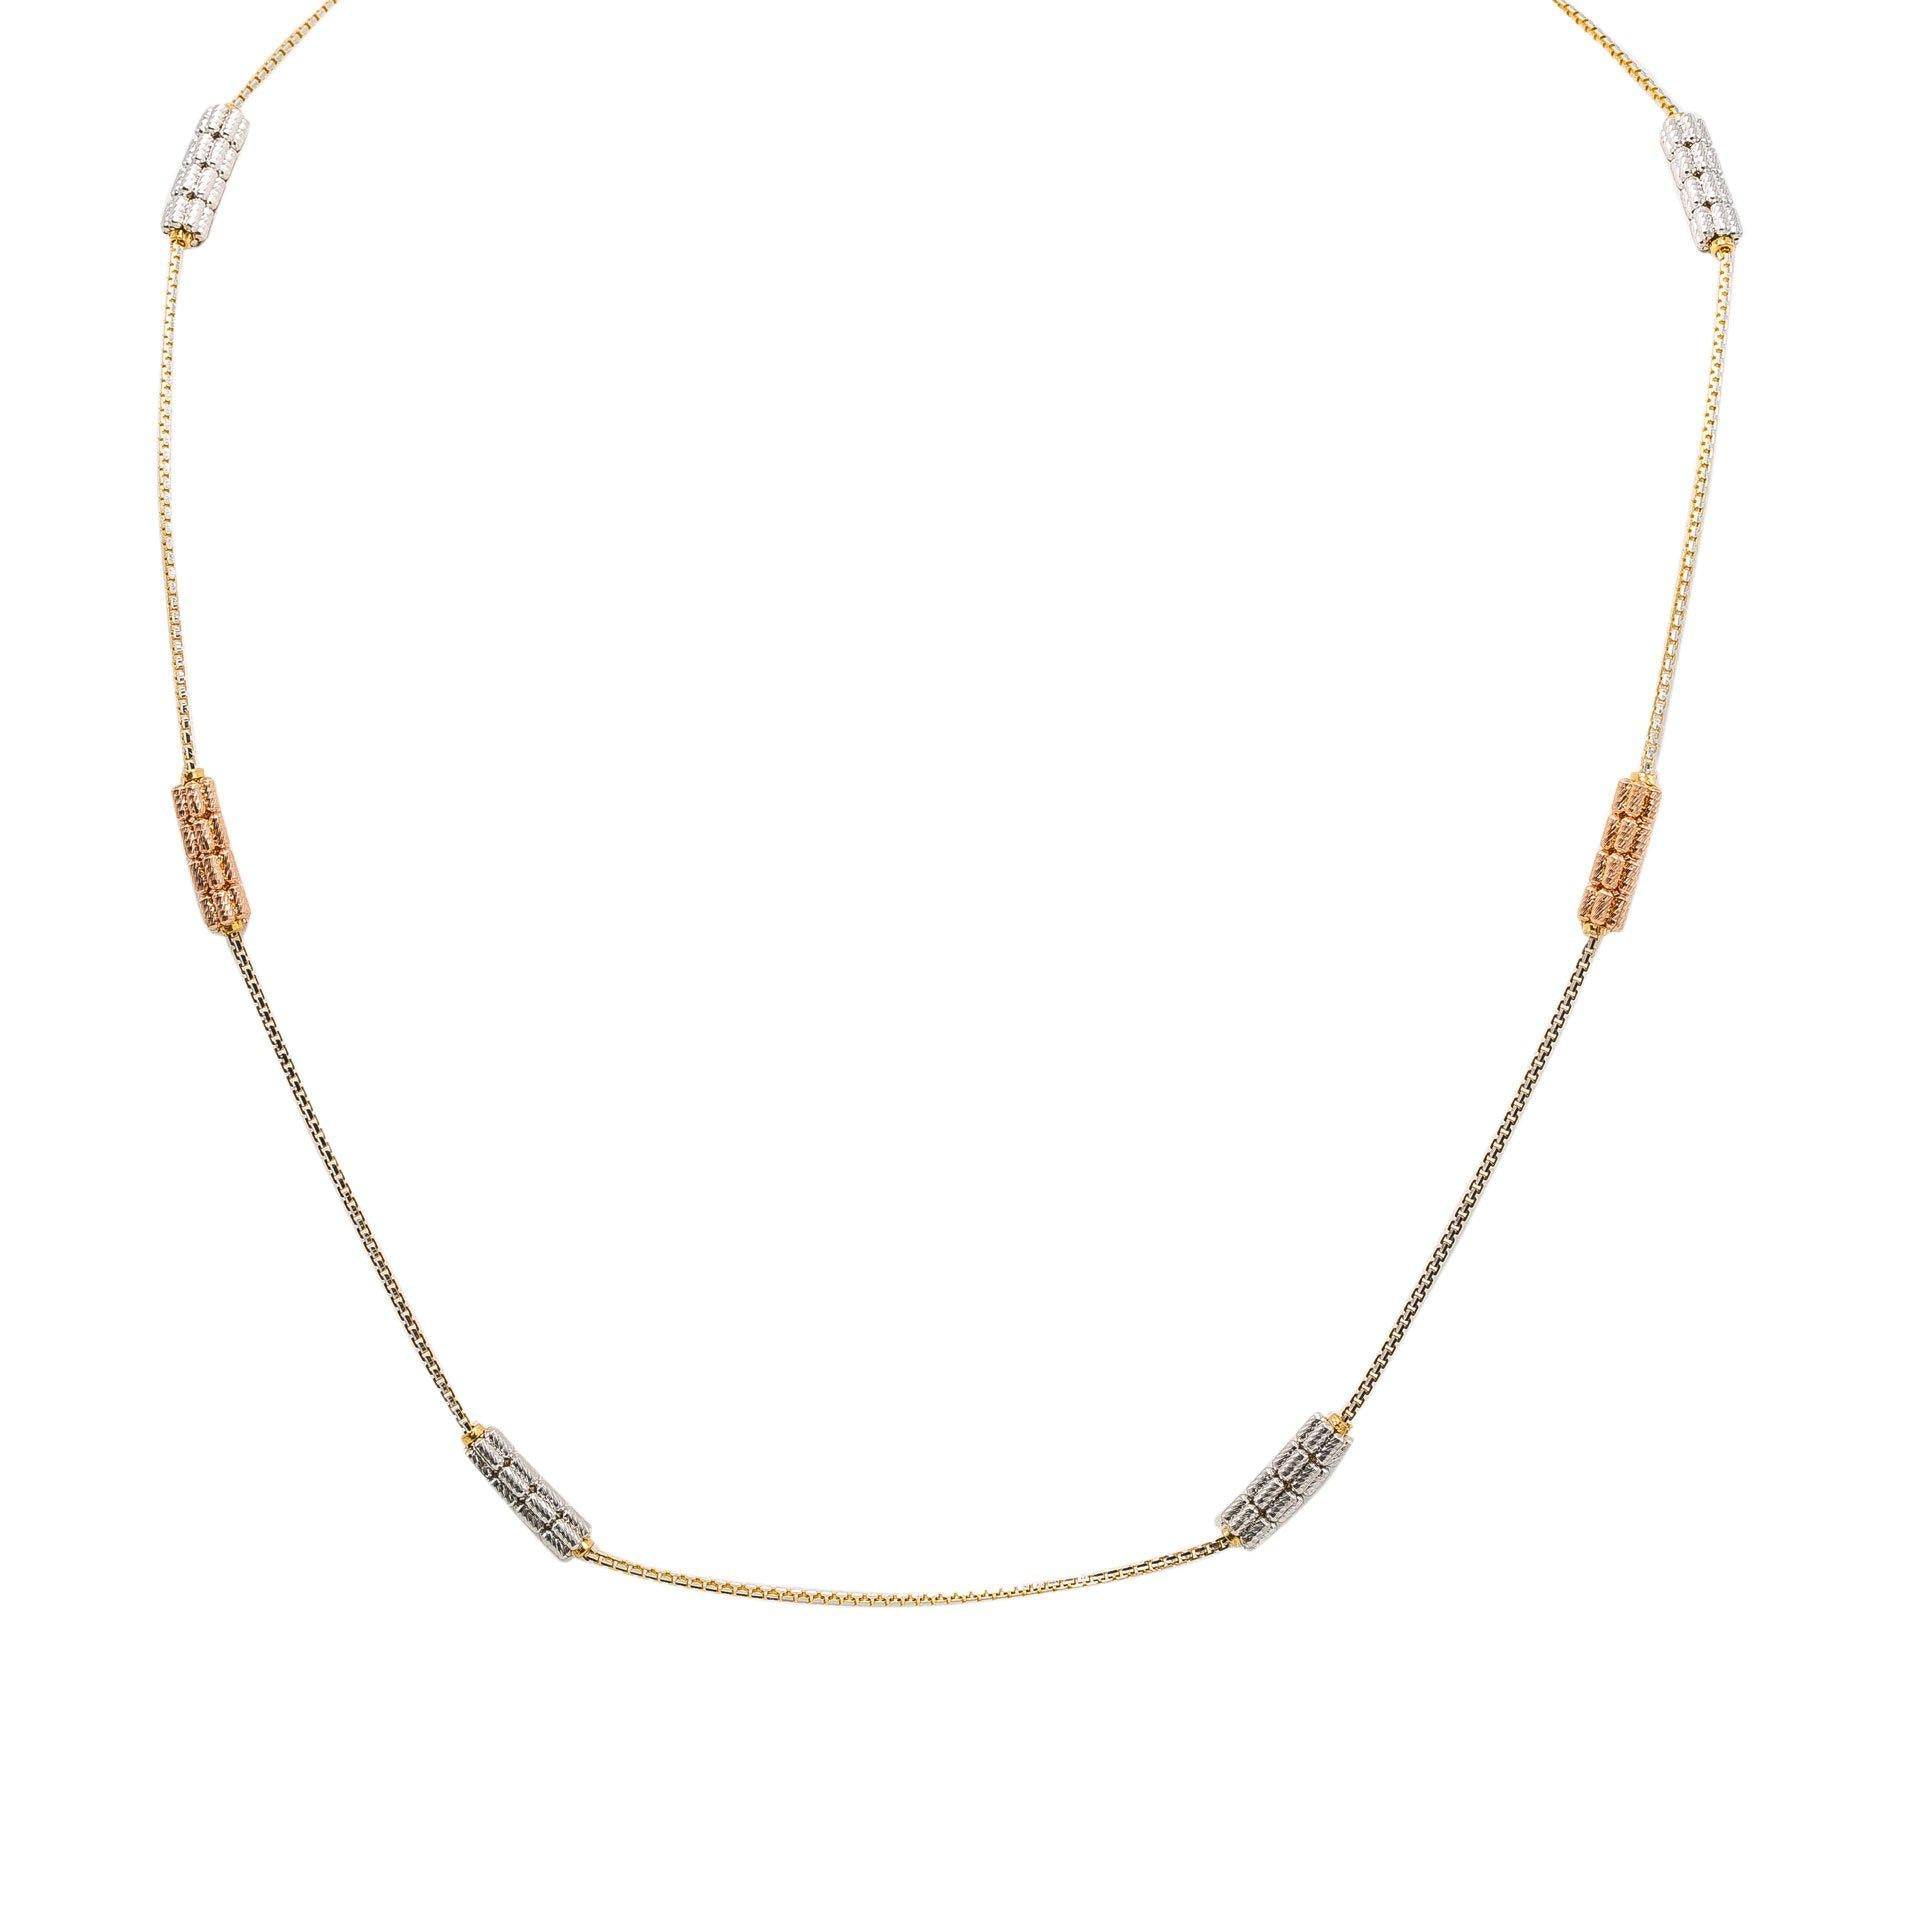 d46b8ccba82 22K Multi Tone Gold Chain W/ White & Rose Gold Detailed Pipe Beads, Size  18.5